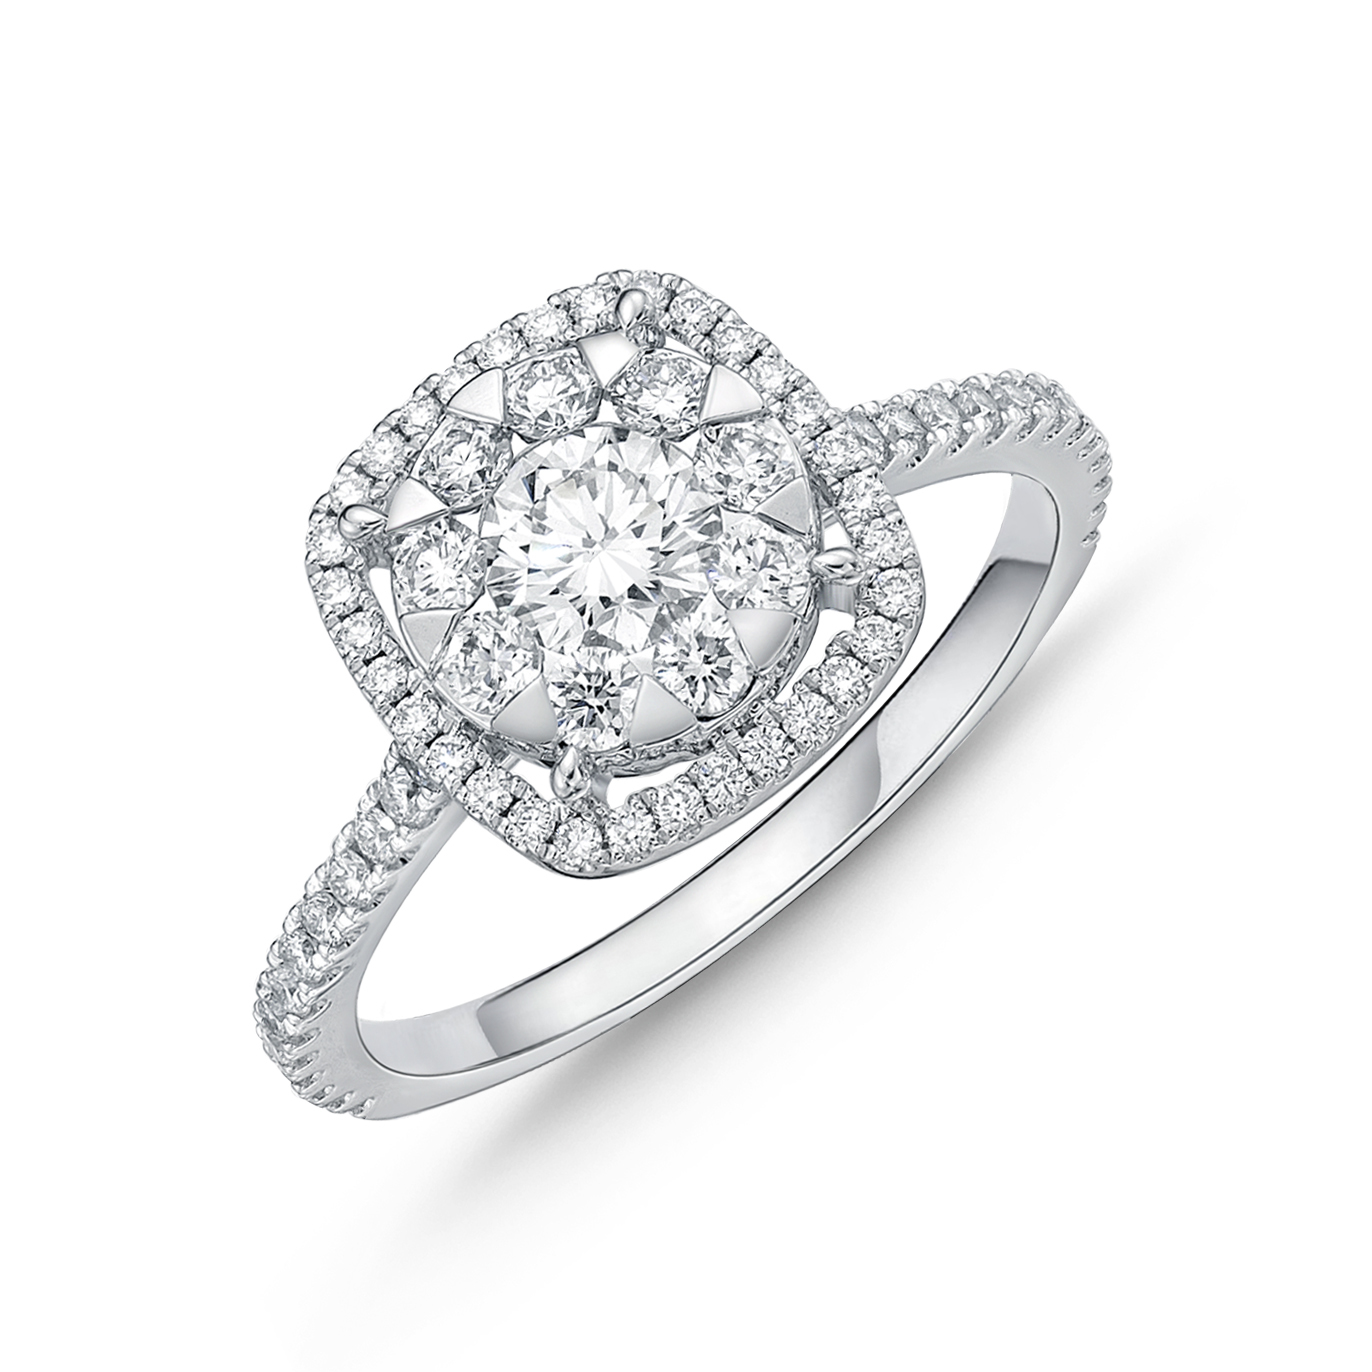 Memoire 18ct White Gold 0.60 Carat Diamond Bouquet Cushion Halo Solitaire Ring